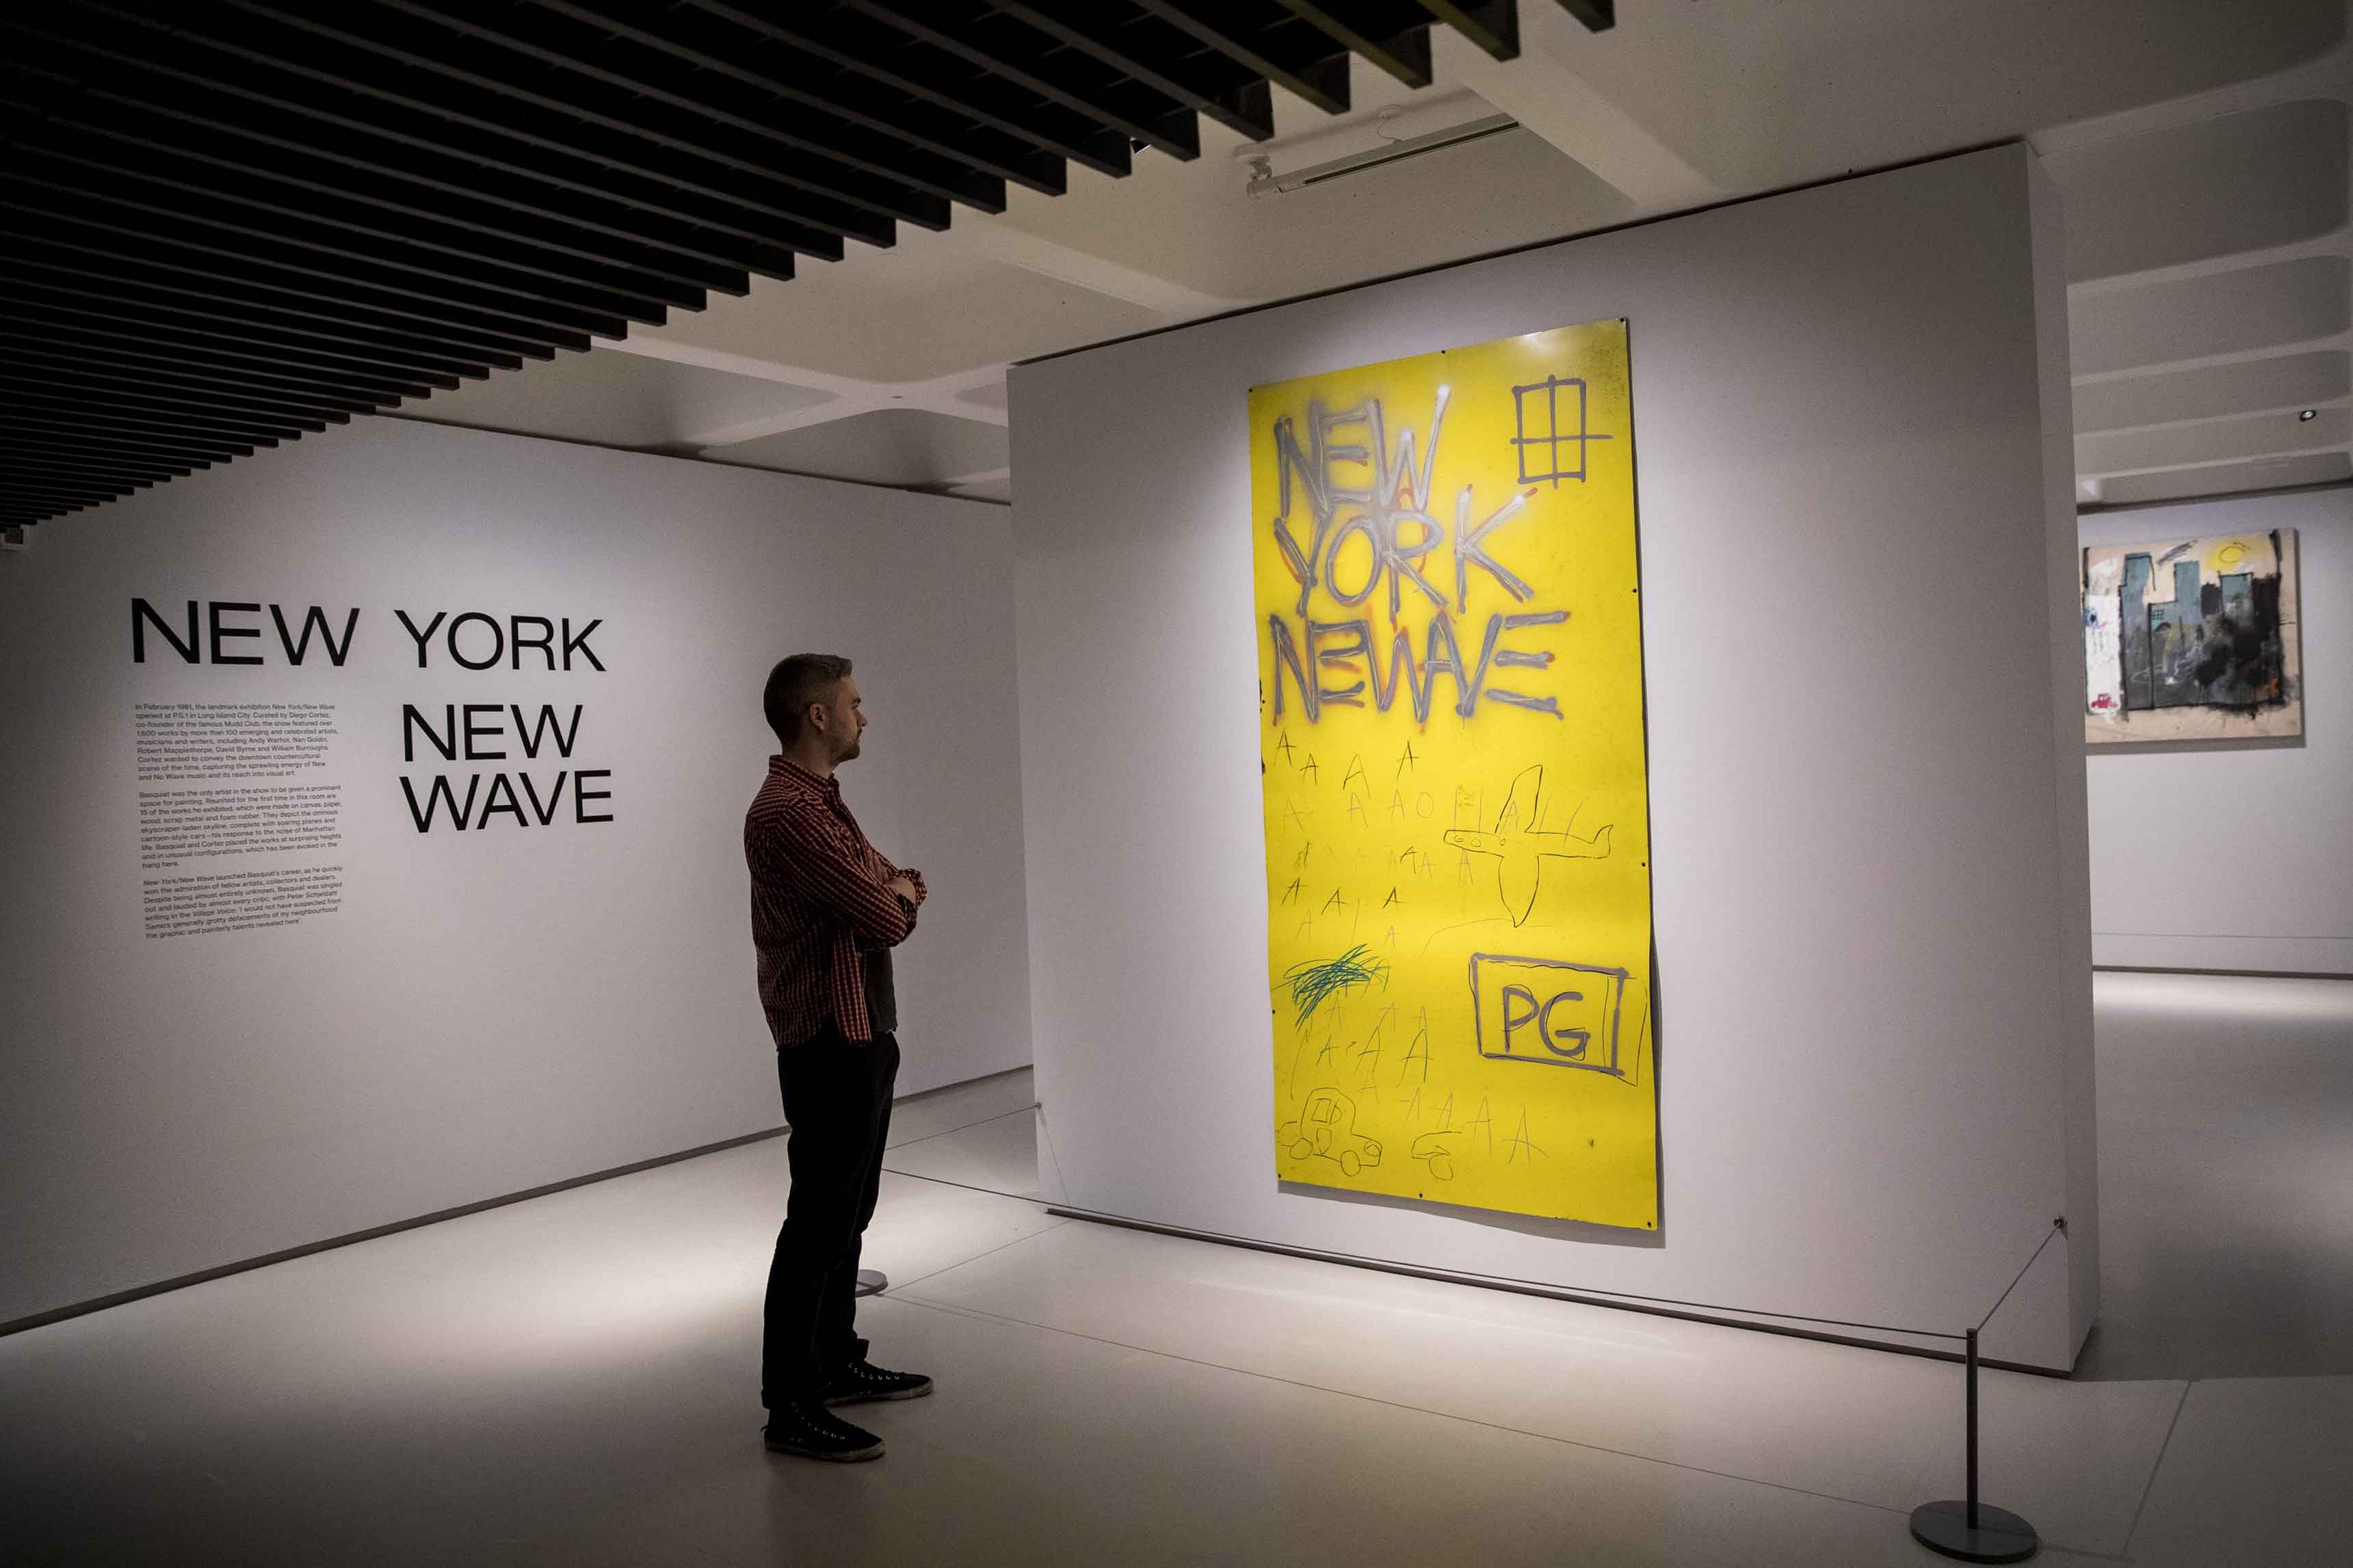 Basquiat: Boom For Real Installation view Barbican Art Gallery 21 September 2017 – 28 January 2018 © Tristan Fewings / Getty Images Artwork: Jean-Michel Basquiat, Untitled, 1980 Courtesy Whitney Museum of American Art, New York. © The Estate of Jean-Michel Basquiat/ Artists Rights Society (ARS), New York/ ADAGP, Paris. Licensed by Artestar, New York.